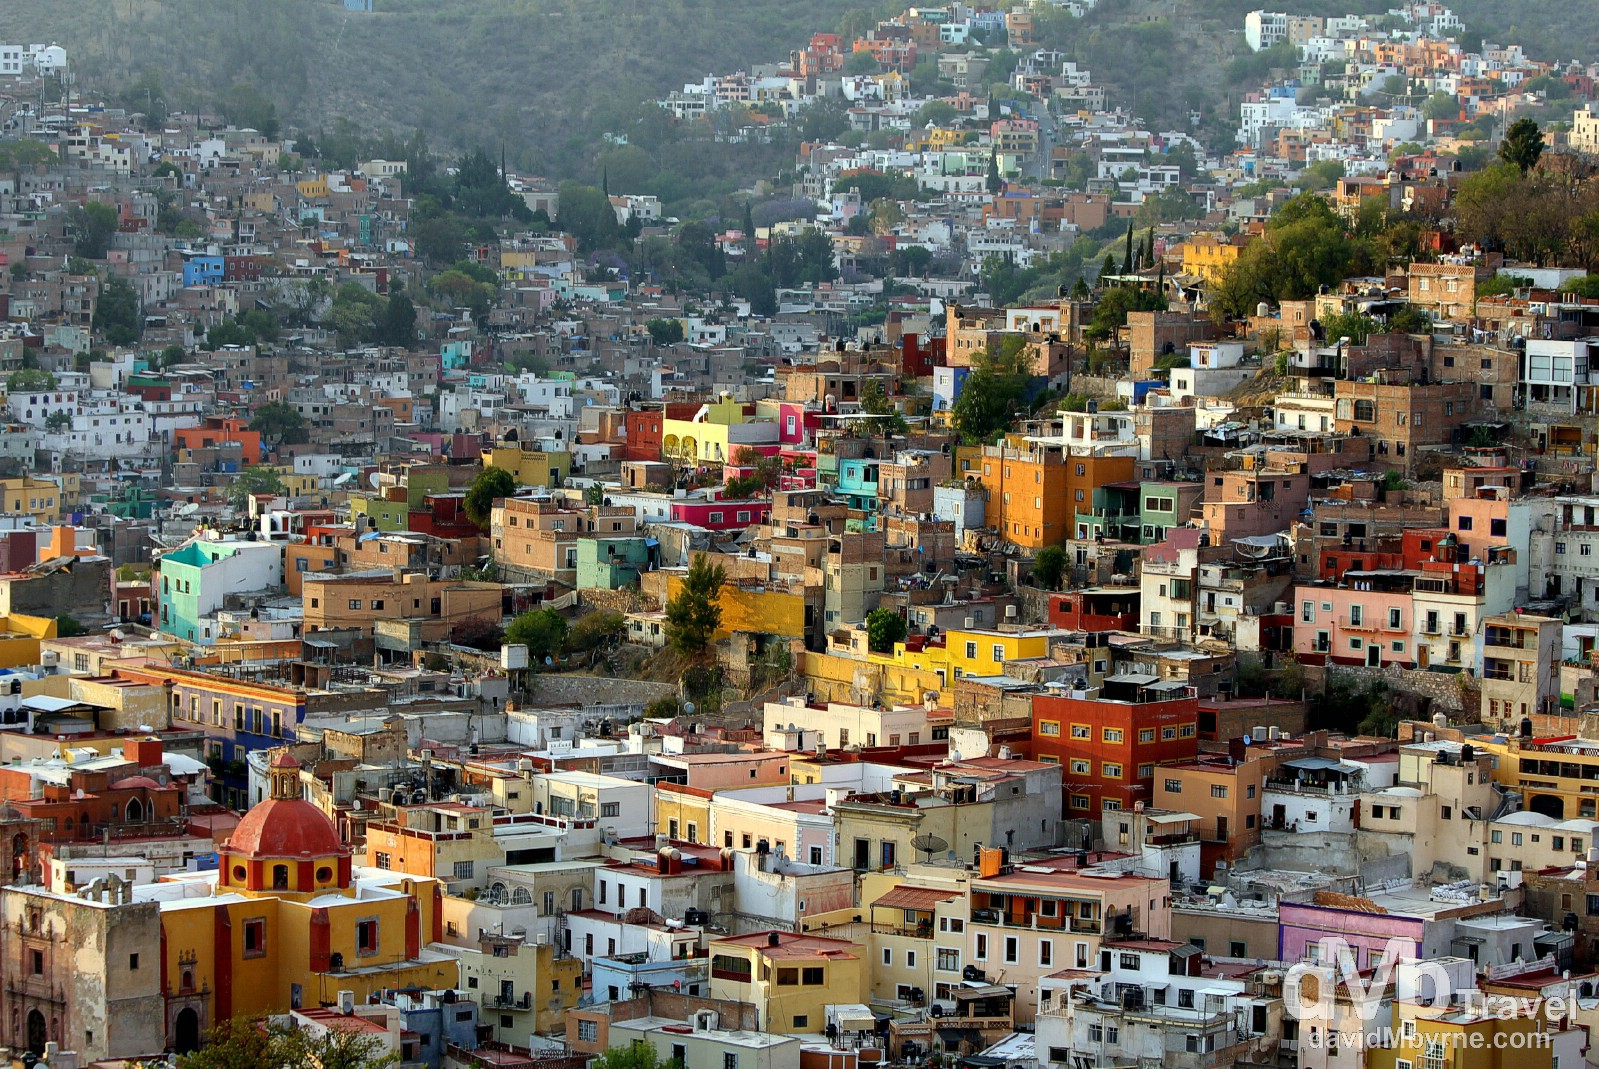 The city of Guanajuato is very compact, which means you can walk just about everywhere of interest. That said, it's very hilly, the result of being located in a ravine in the Sierra de Media Luna - virtually every point in the city is on a slant. But ignore all that. Just walk. Meander the numerous sinuous and narrow streets, all lined with multi-storied, brightly painted colonial homes. Go up those endless stairs, or down into the unknown, through one of the many dark, unique one-way tunnels. Go left, until you hit a dead end. Go back and go right. It'll bring you somewhere fascinating. Explore. Get lost, if you can. It's so much fun. Oh, and don't forget your camera. Please don't forget your camera. Not here. Guanajuato, Mexico. April 23rd 2013.